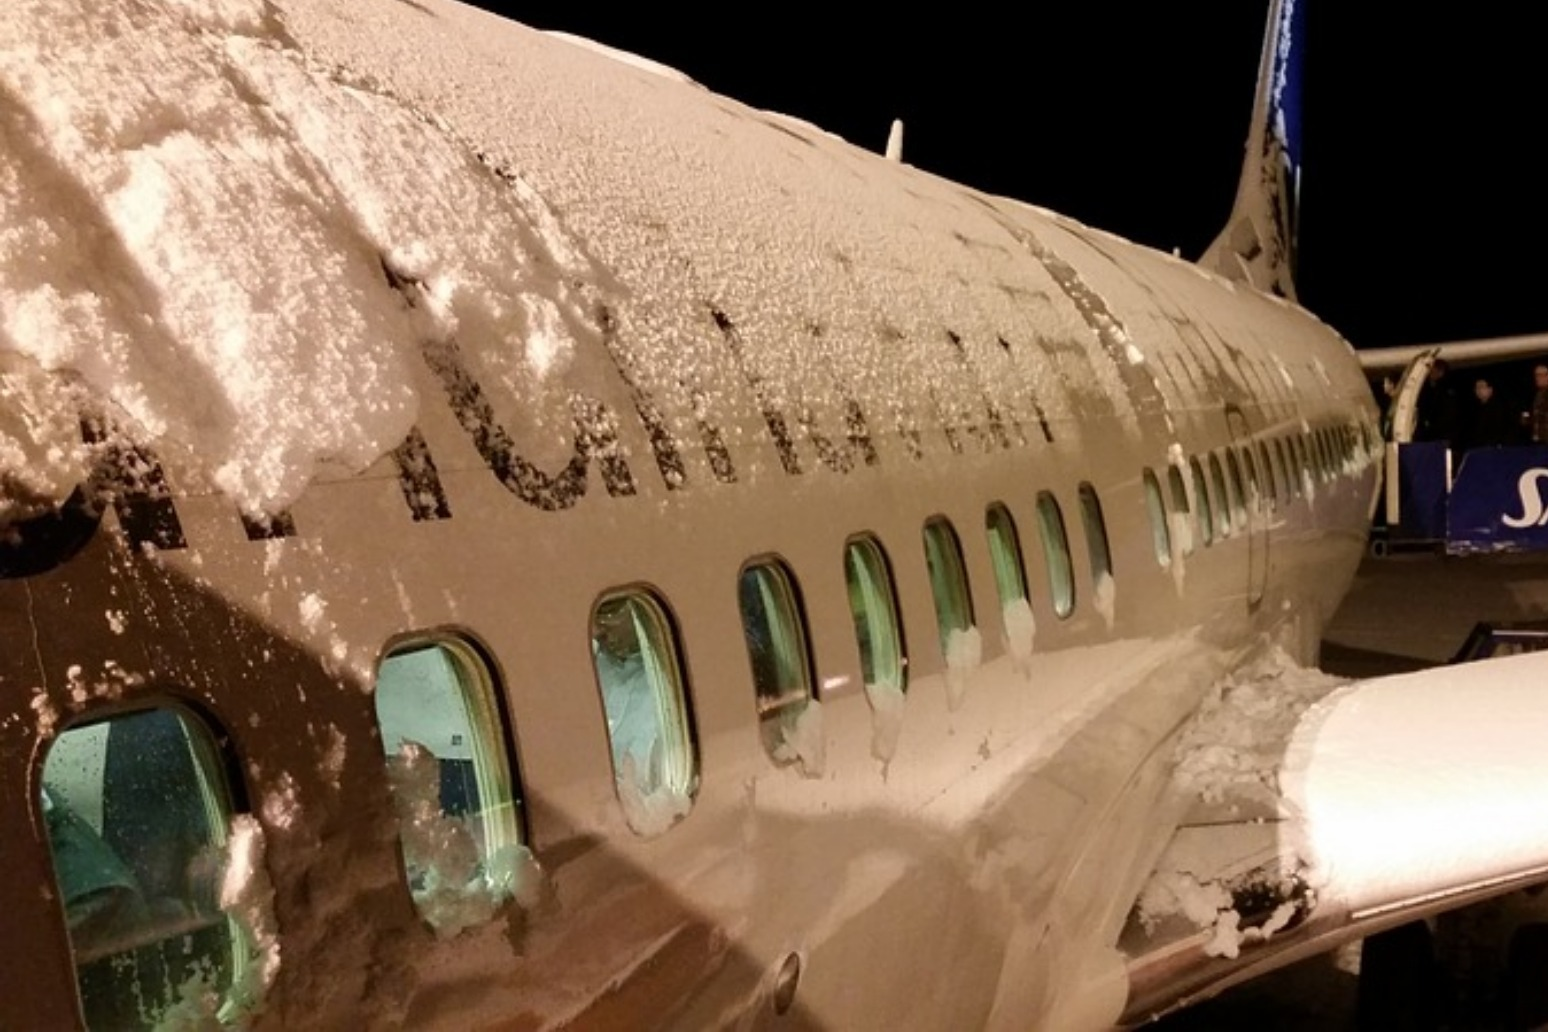 Snow causes widespread disruption across parts of the UK with flights grounded